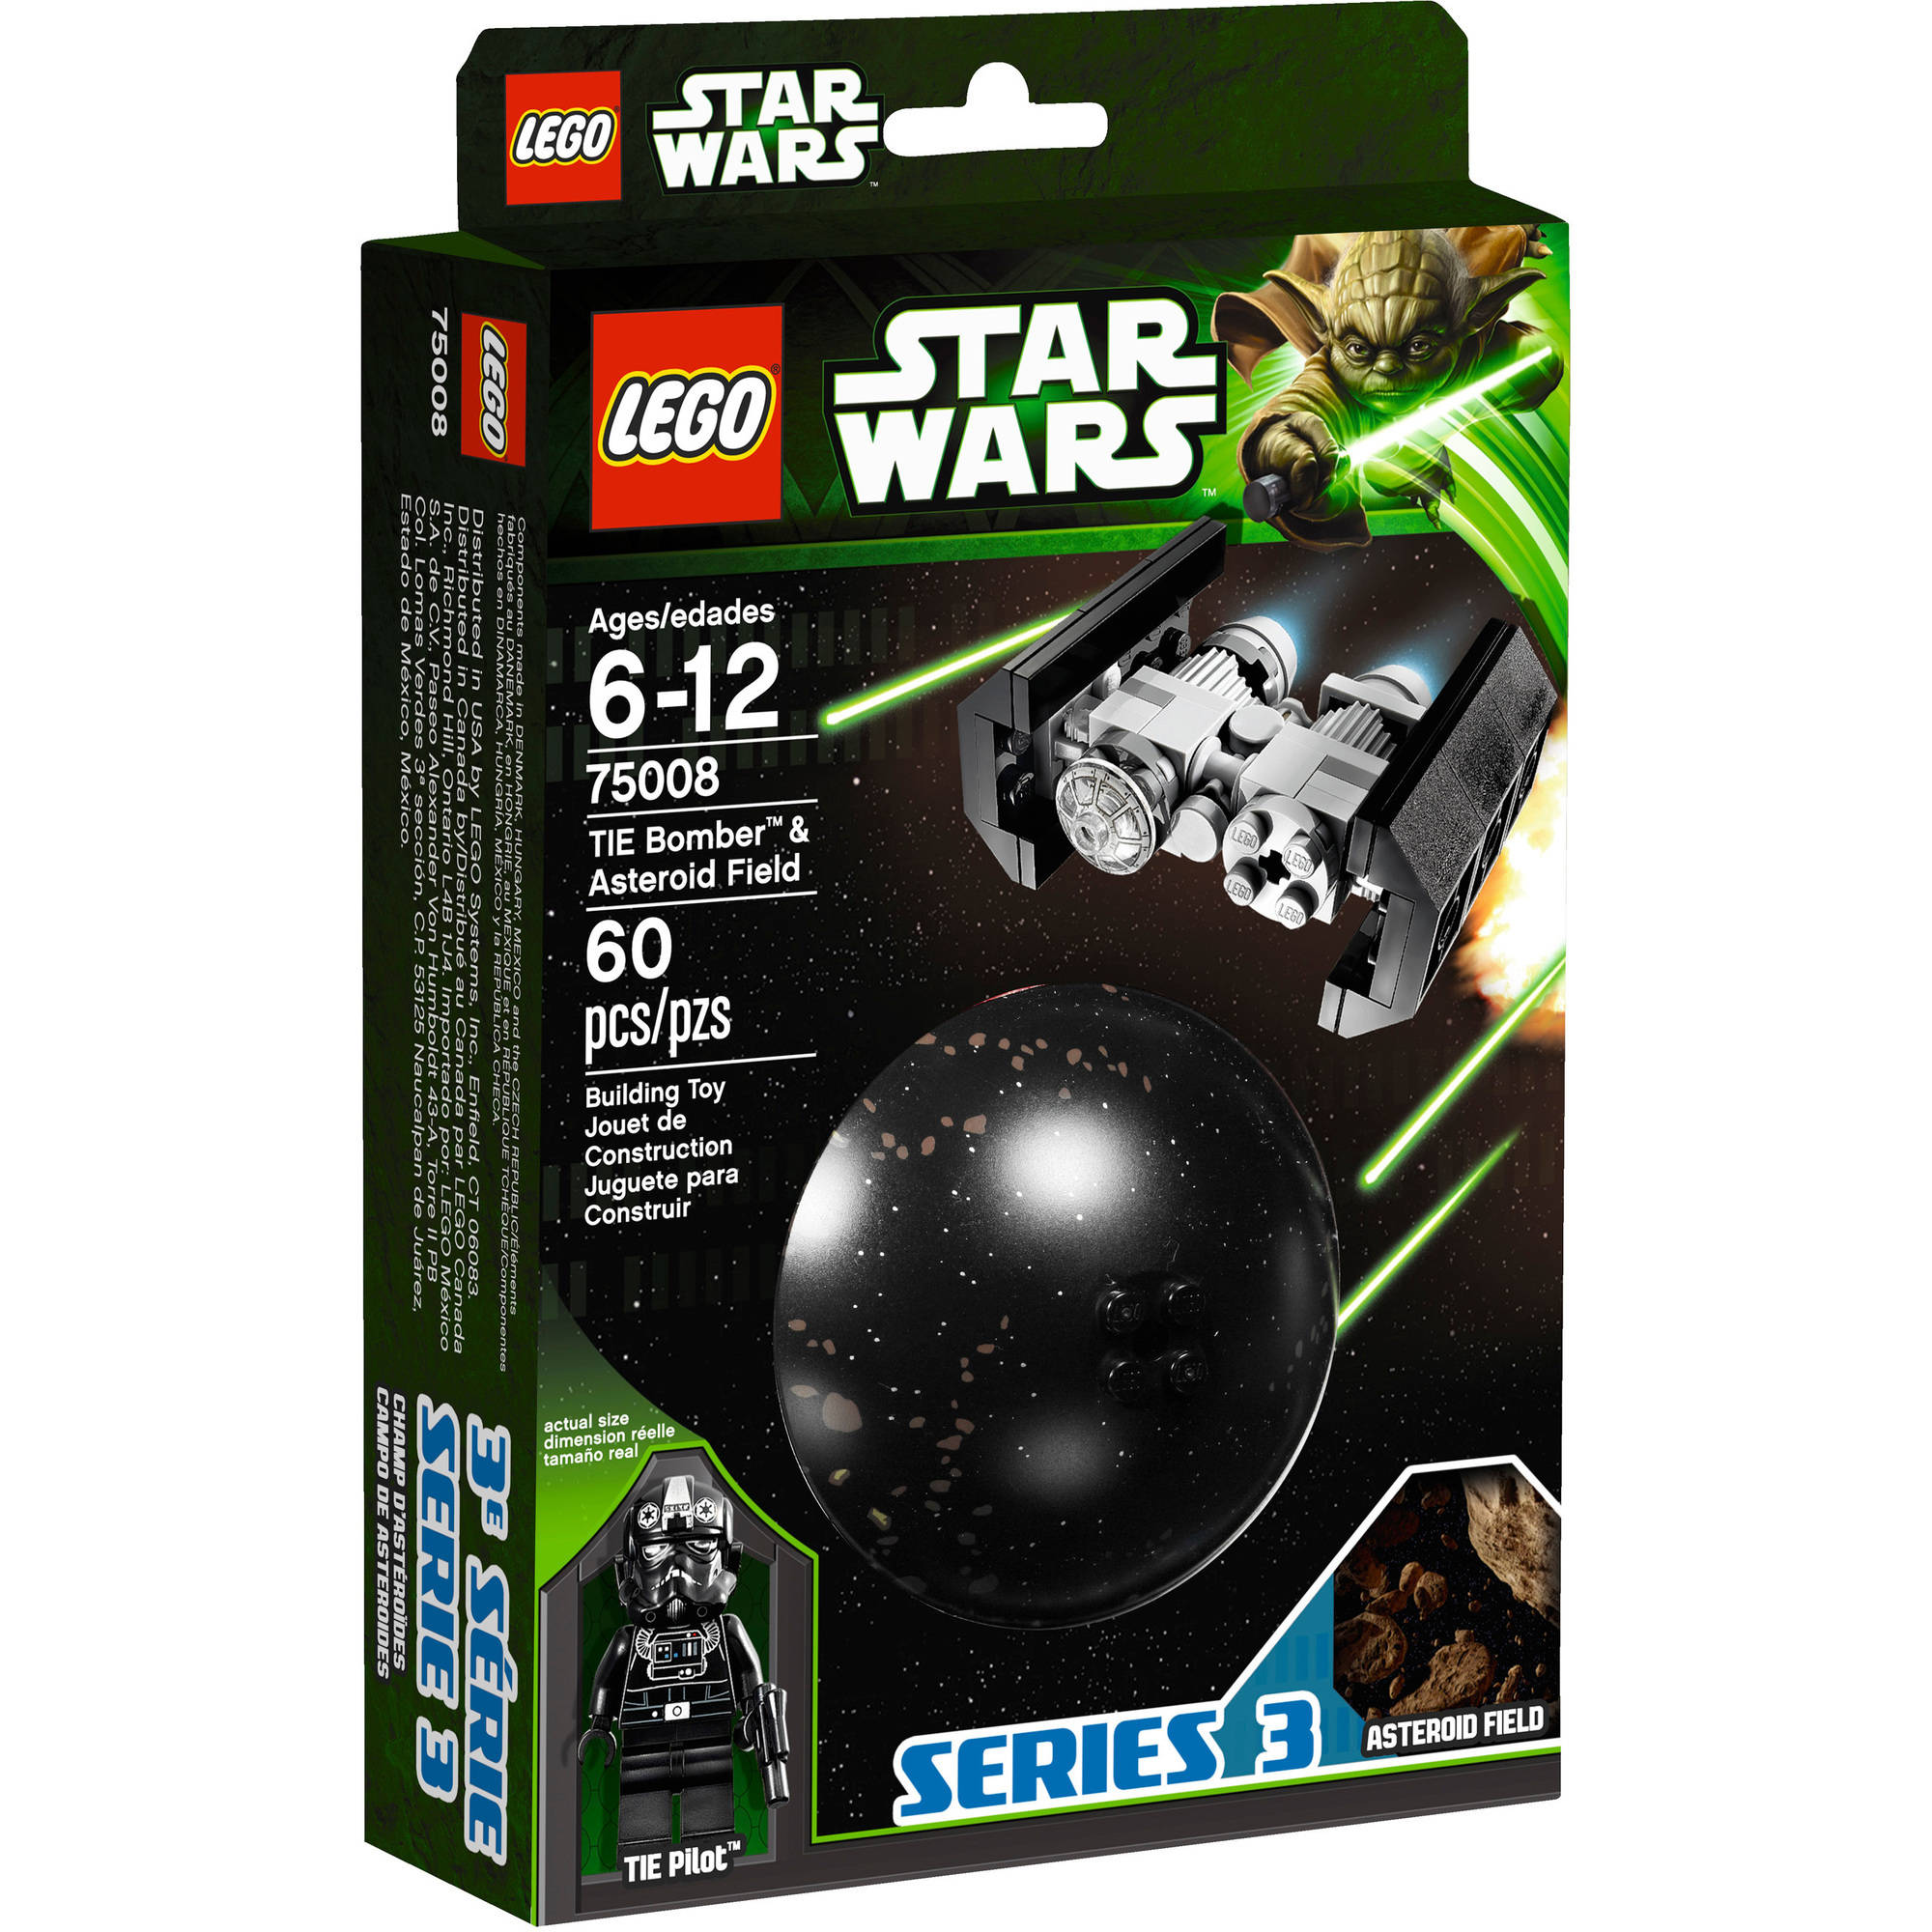 LEGO Star Wars TIE Bomber and Asteroid Field Play Set